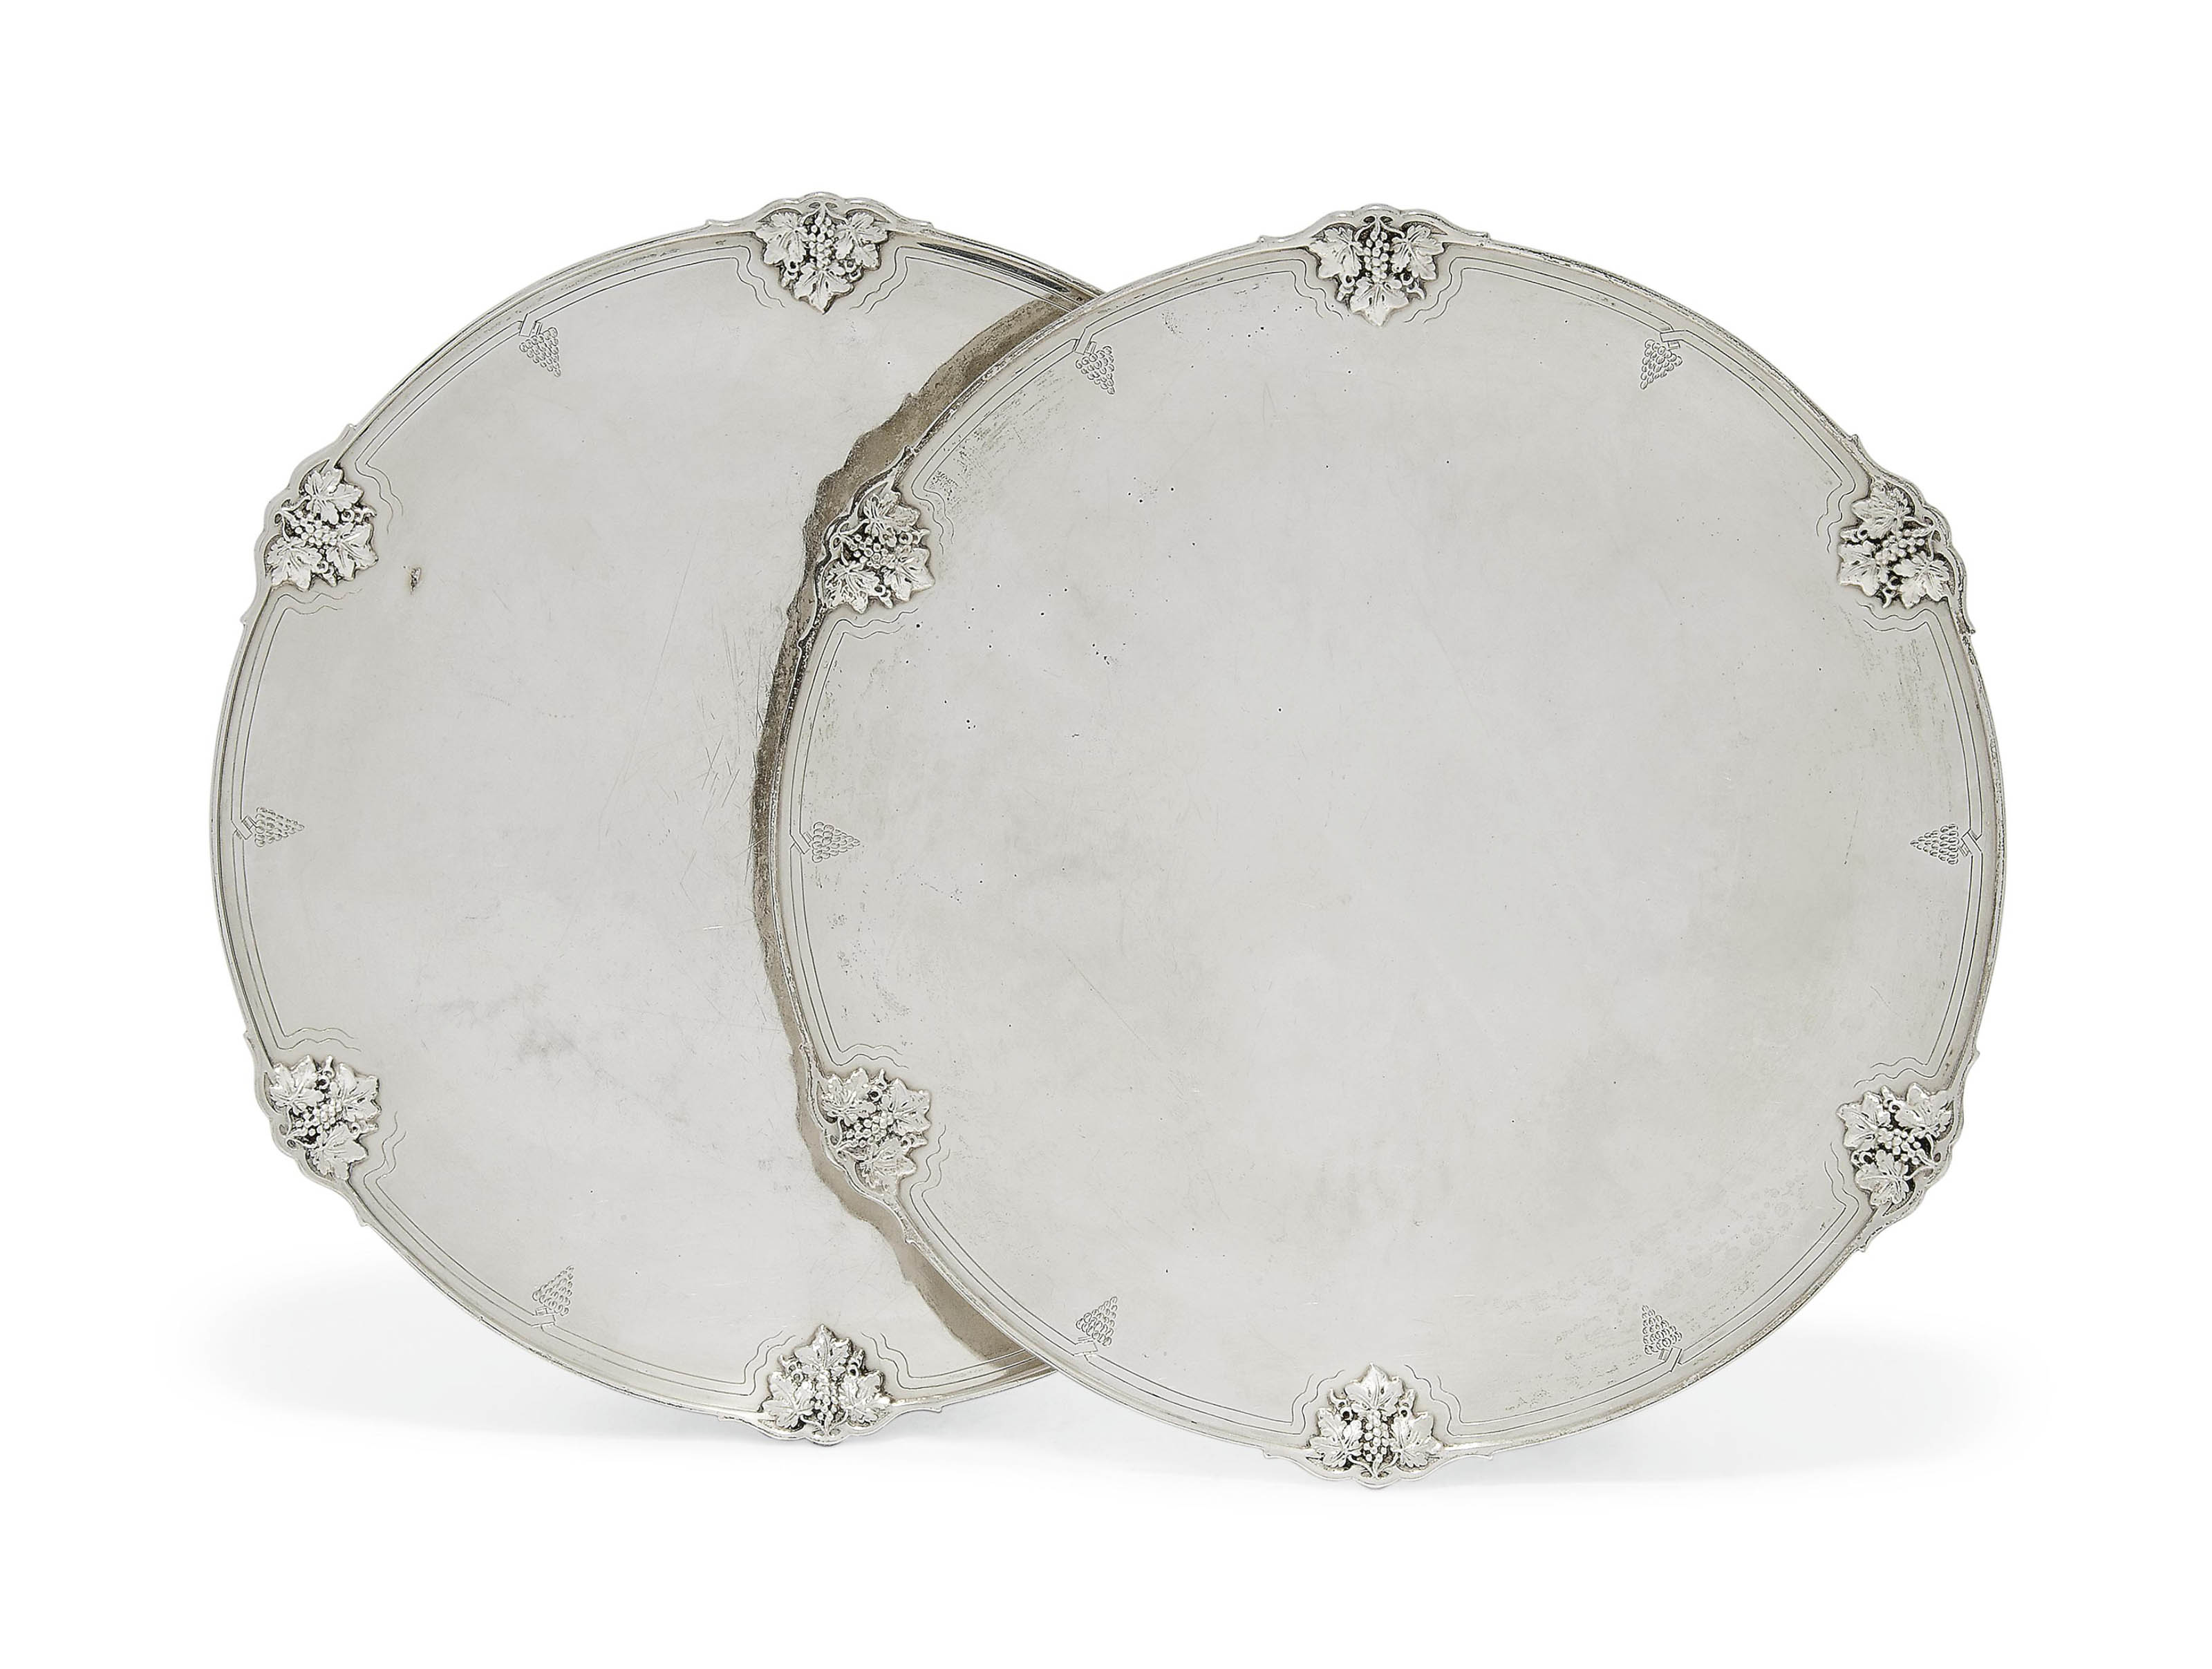 A PAIR OF SILVER DISHES